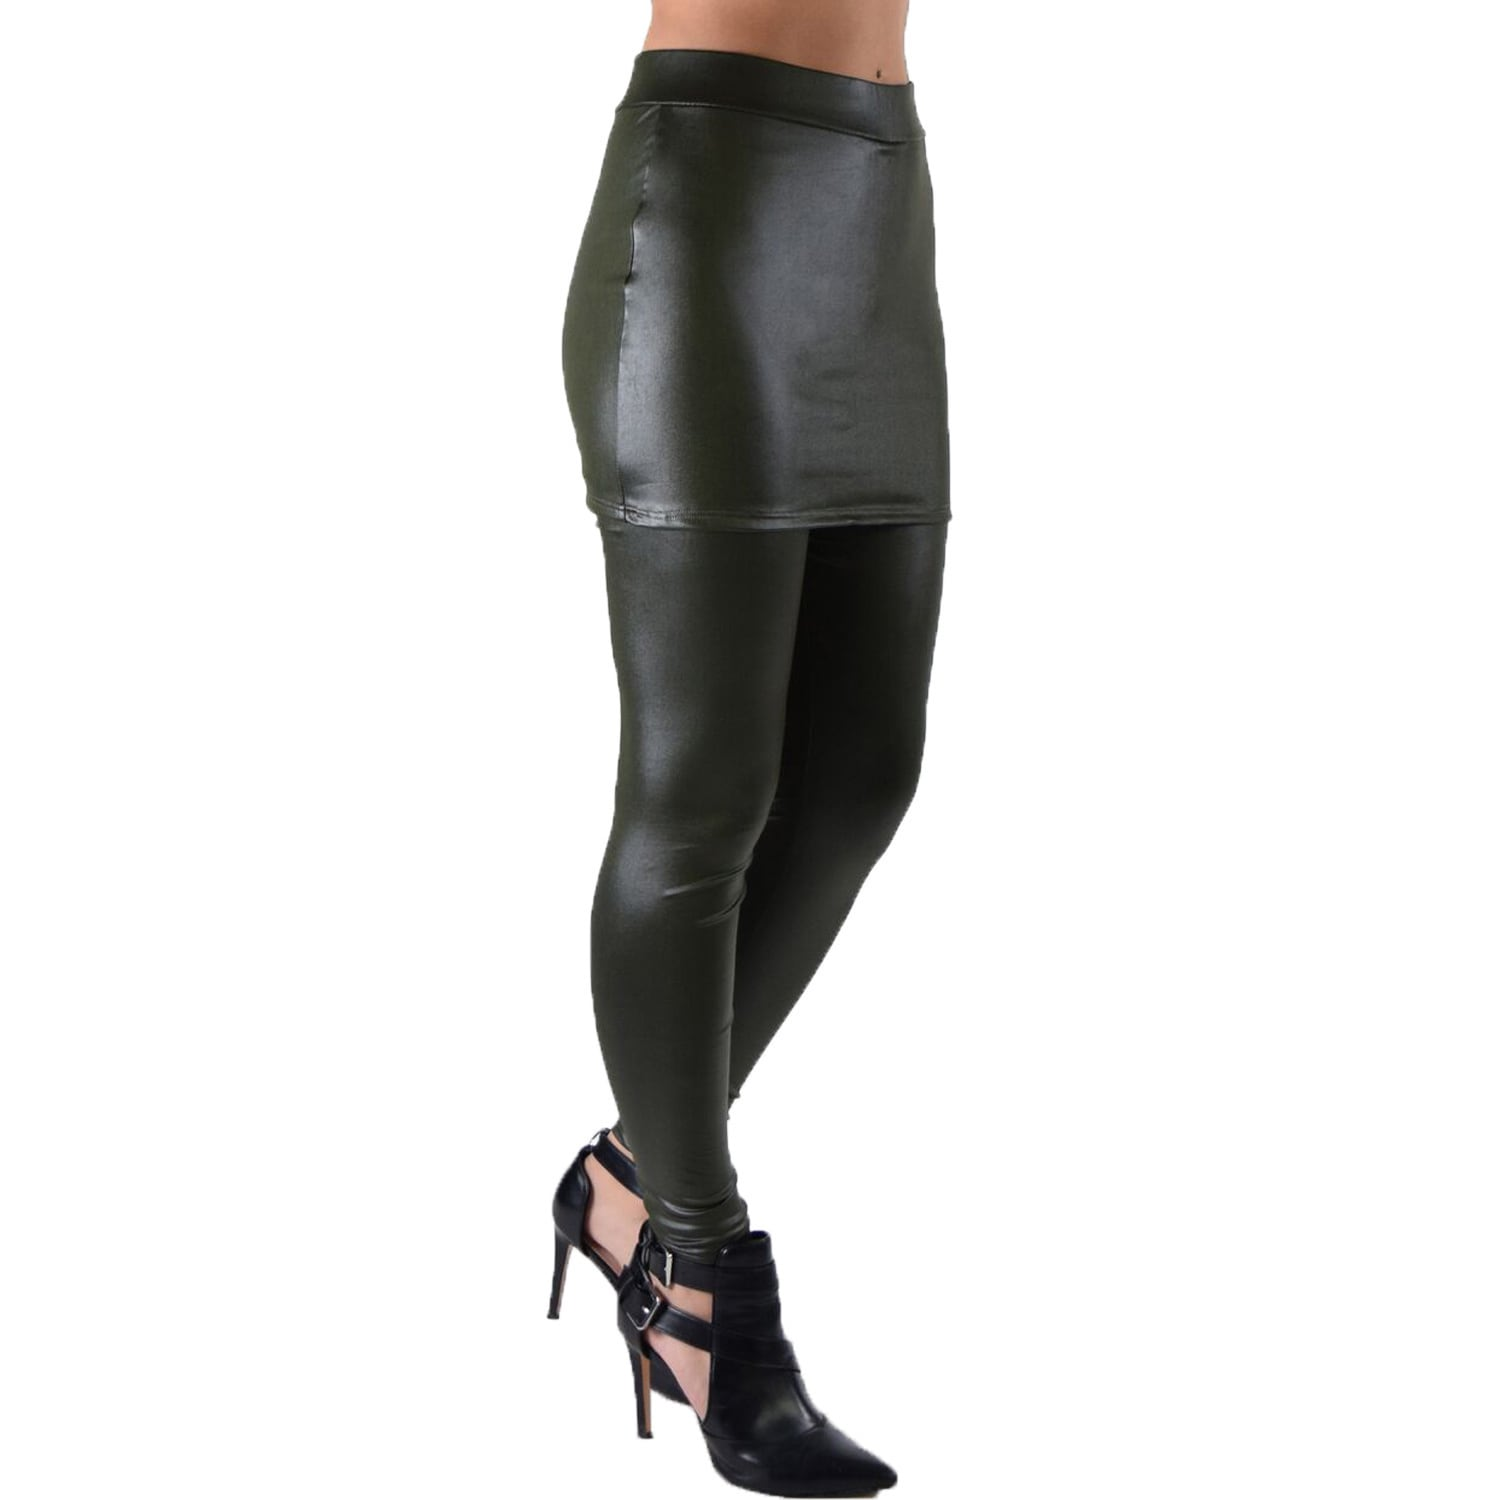 9913e5b17edf1 Dinamit Juniors' Faux Leather Liquid Wet Look Stretchy and Fun Skirt  Leggings